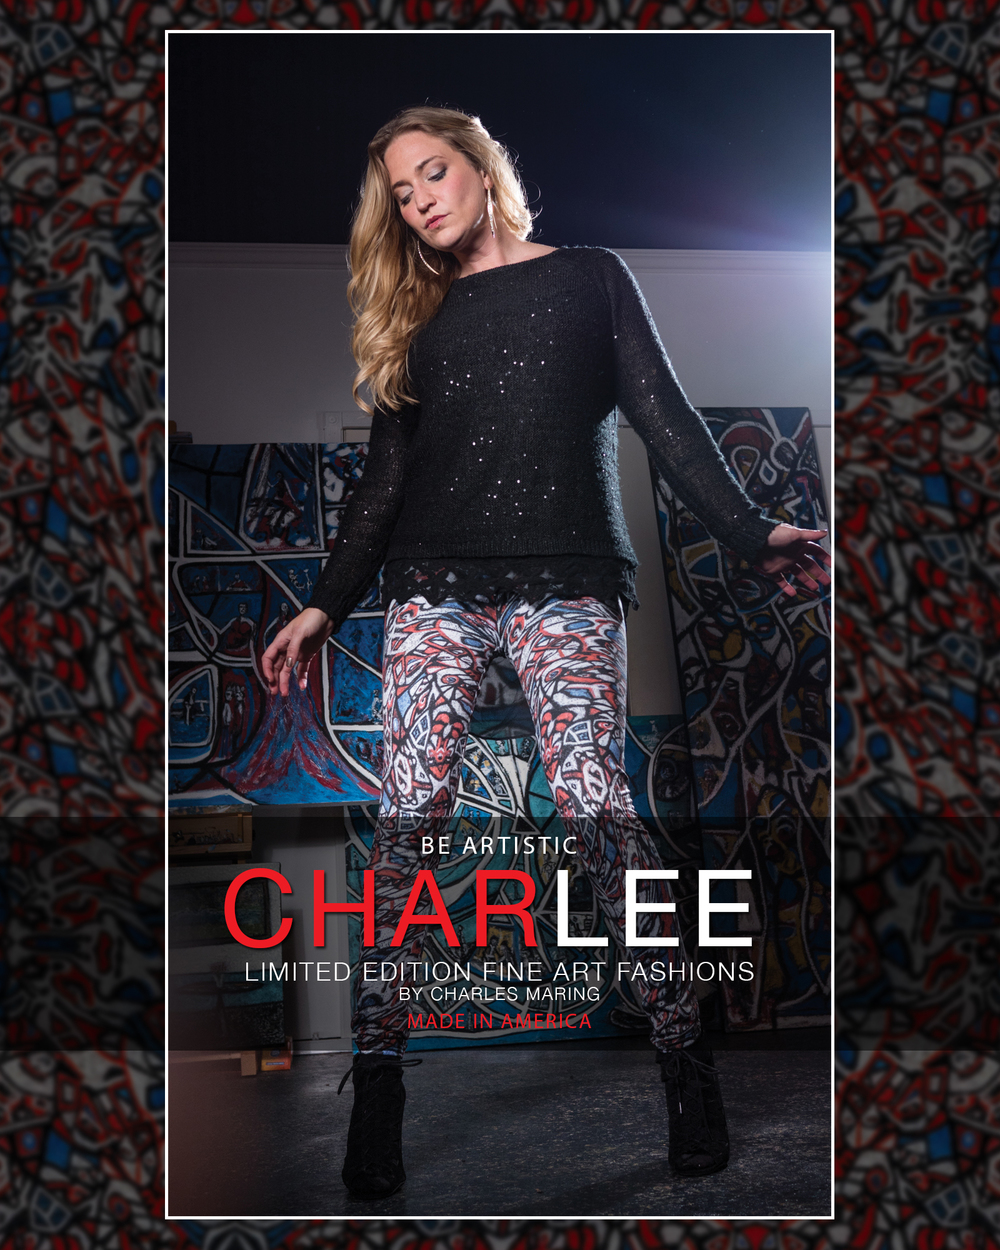 Charlee limited edition fine art fashions by Charles Maring